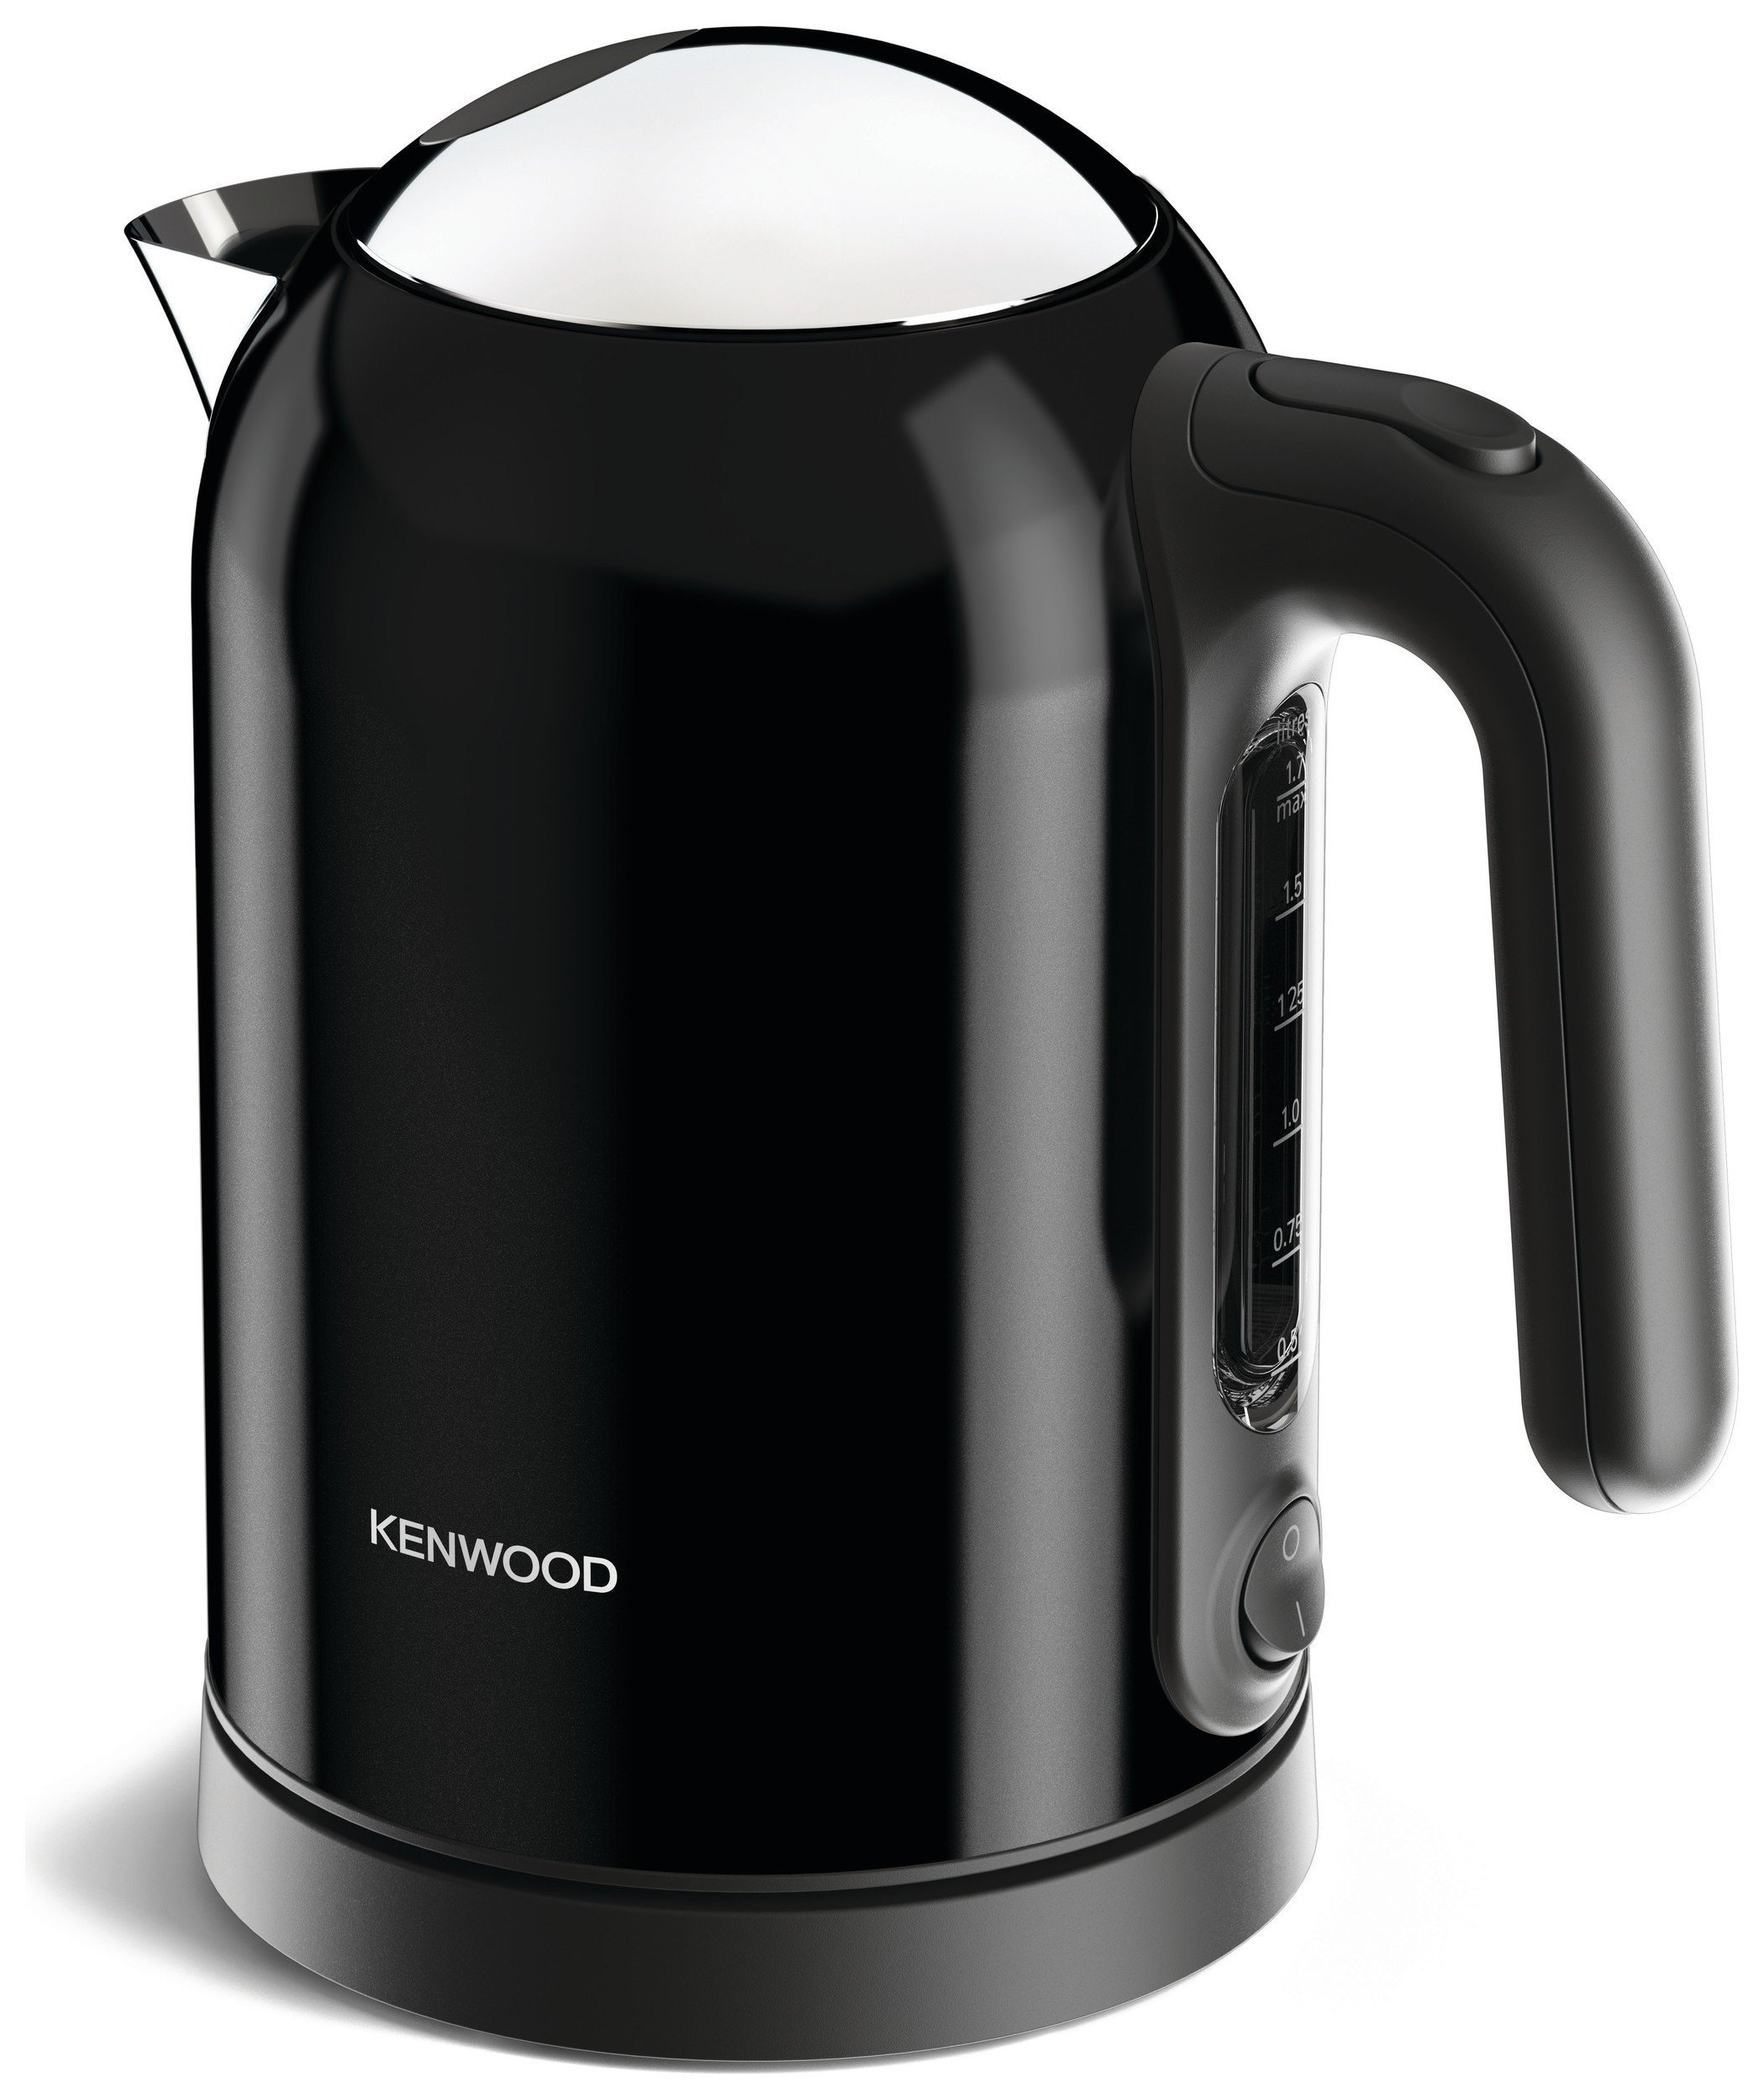 Buy Kenwood Kettles At Findelectricals Buy The Cheapest